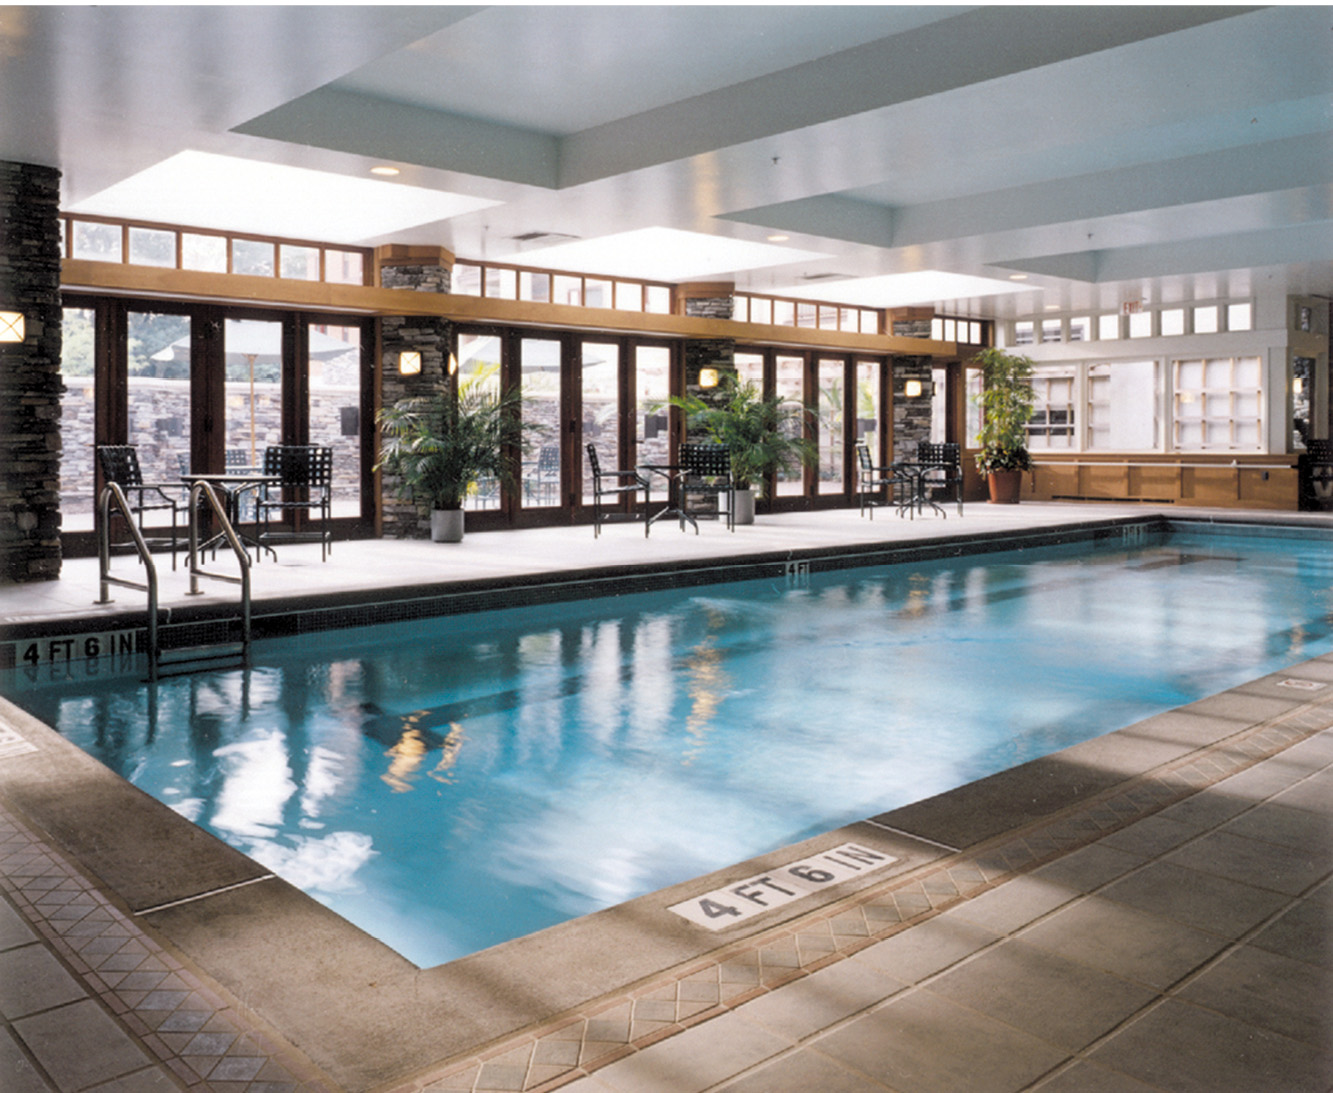 Lower level pool and terrace.